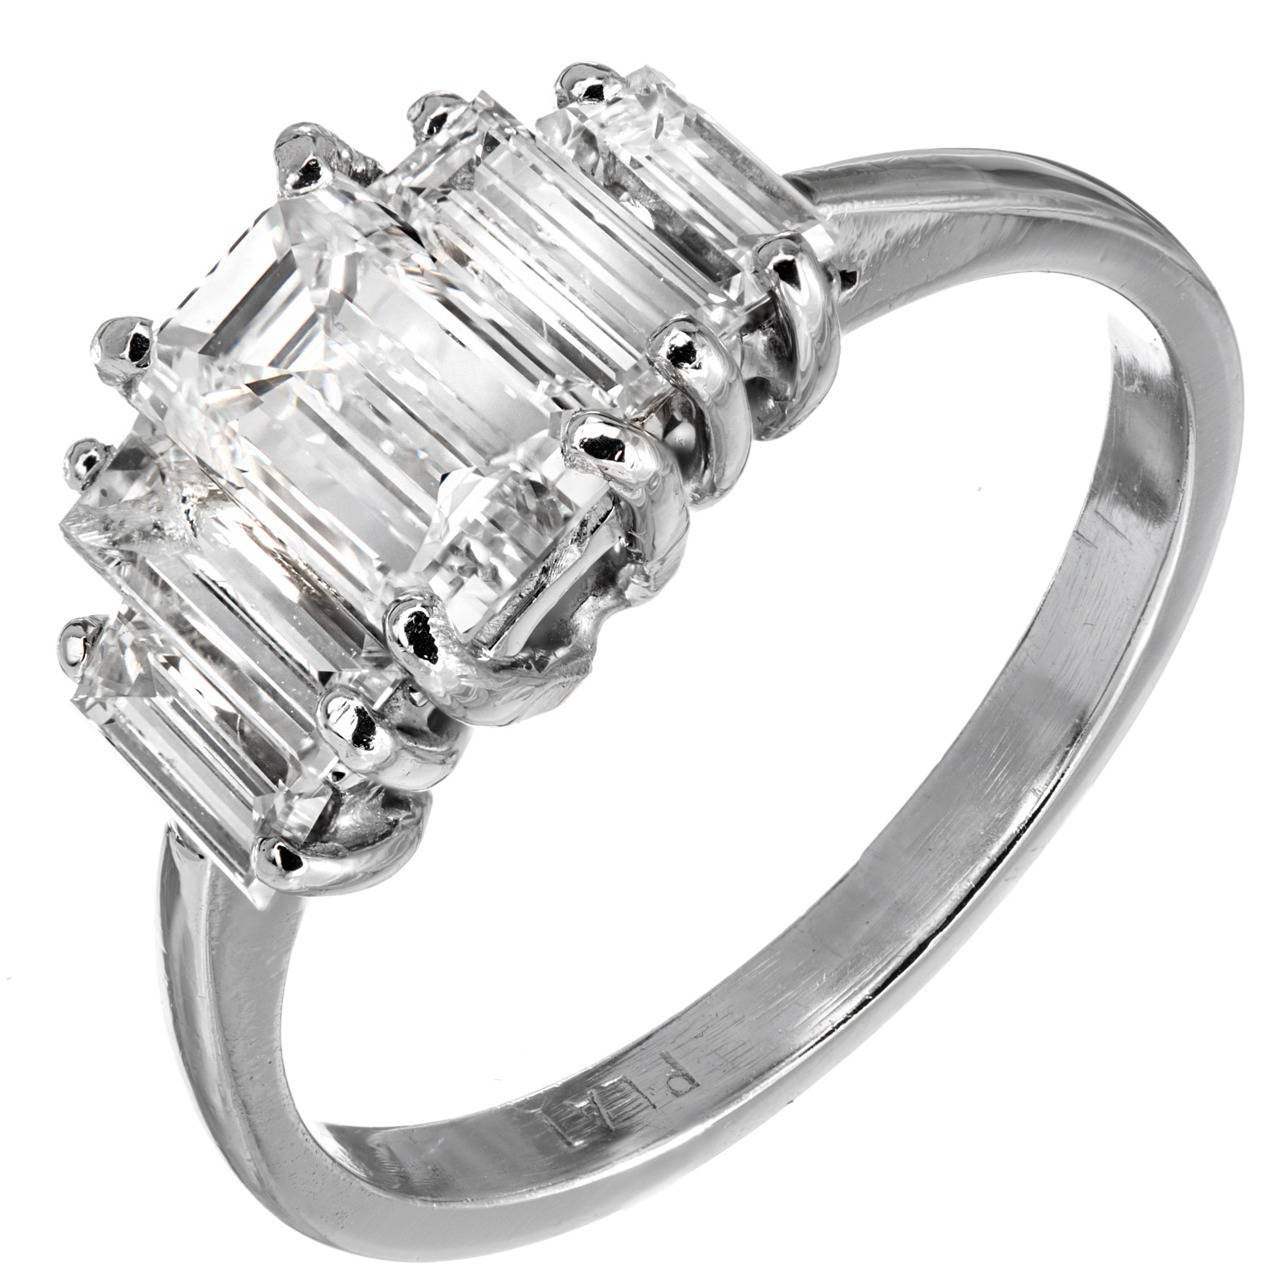 GIA Certified .94 Carat Emerald Cut Diamond Platinum Engagement Ring For Sale